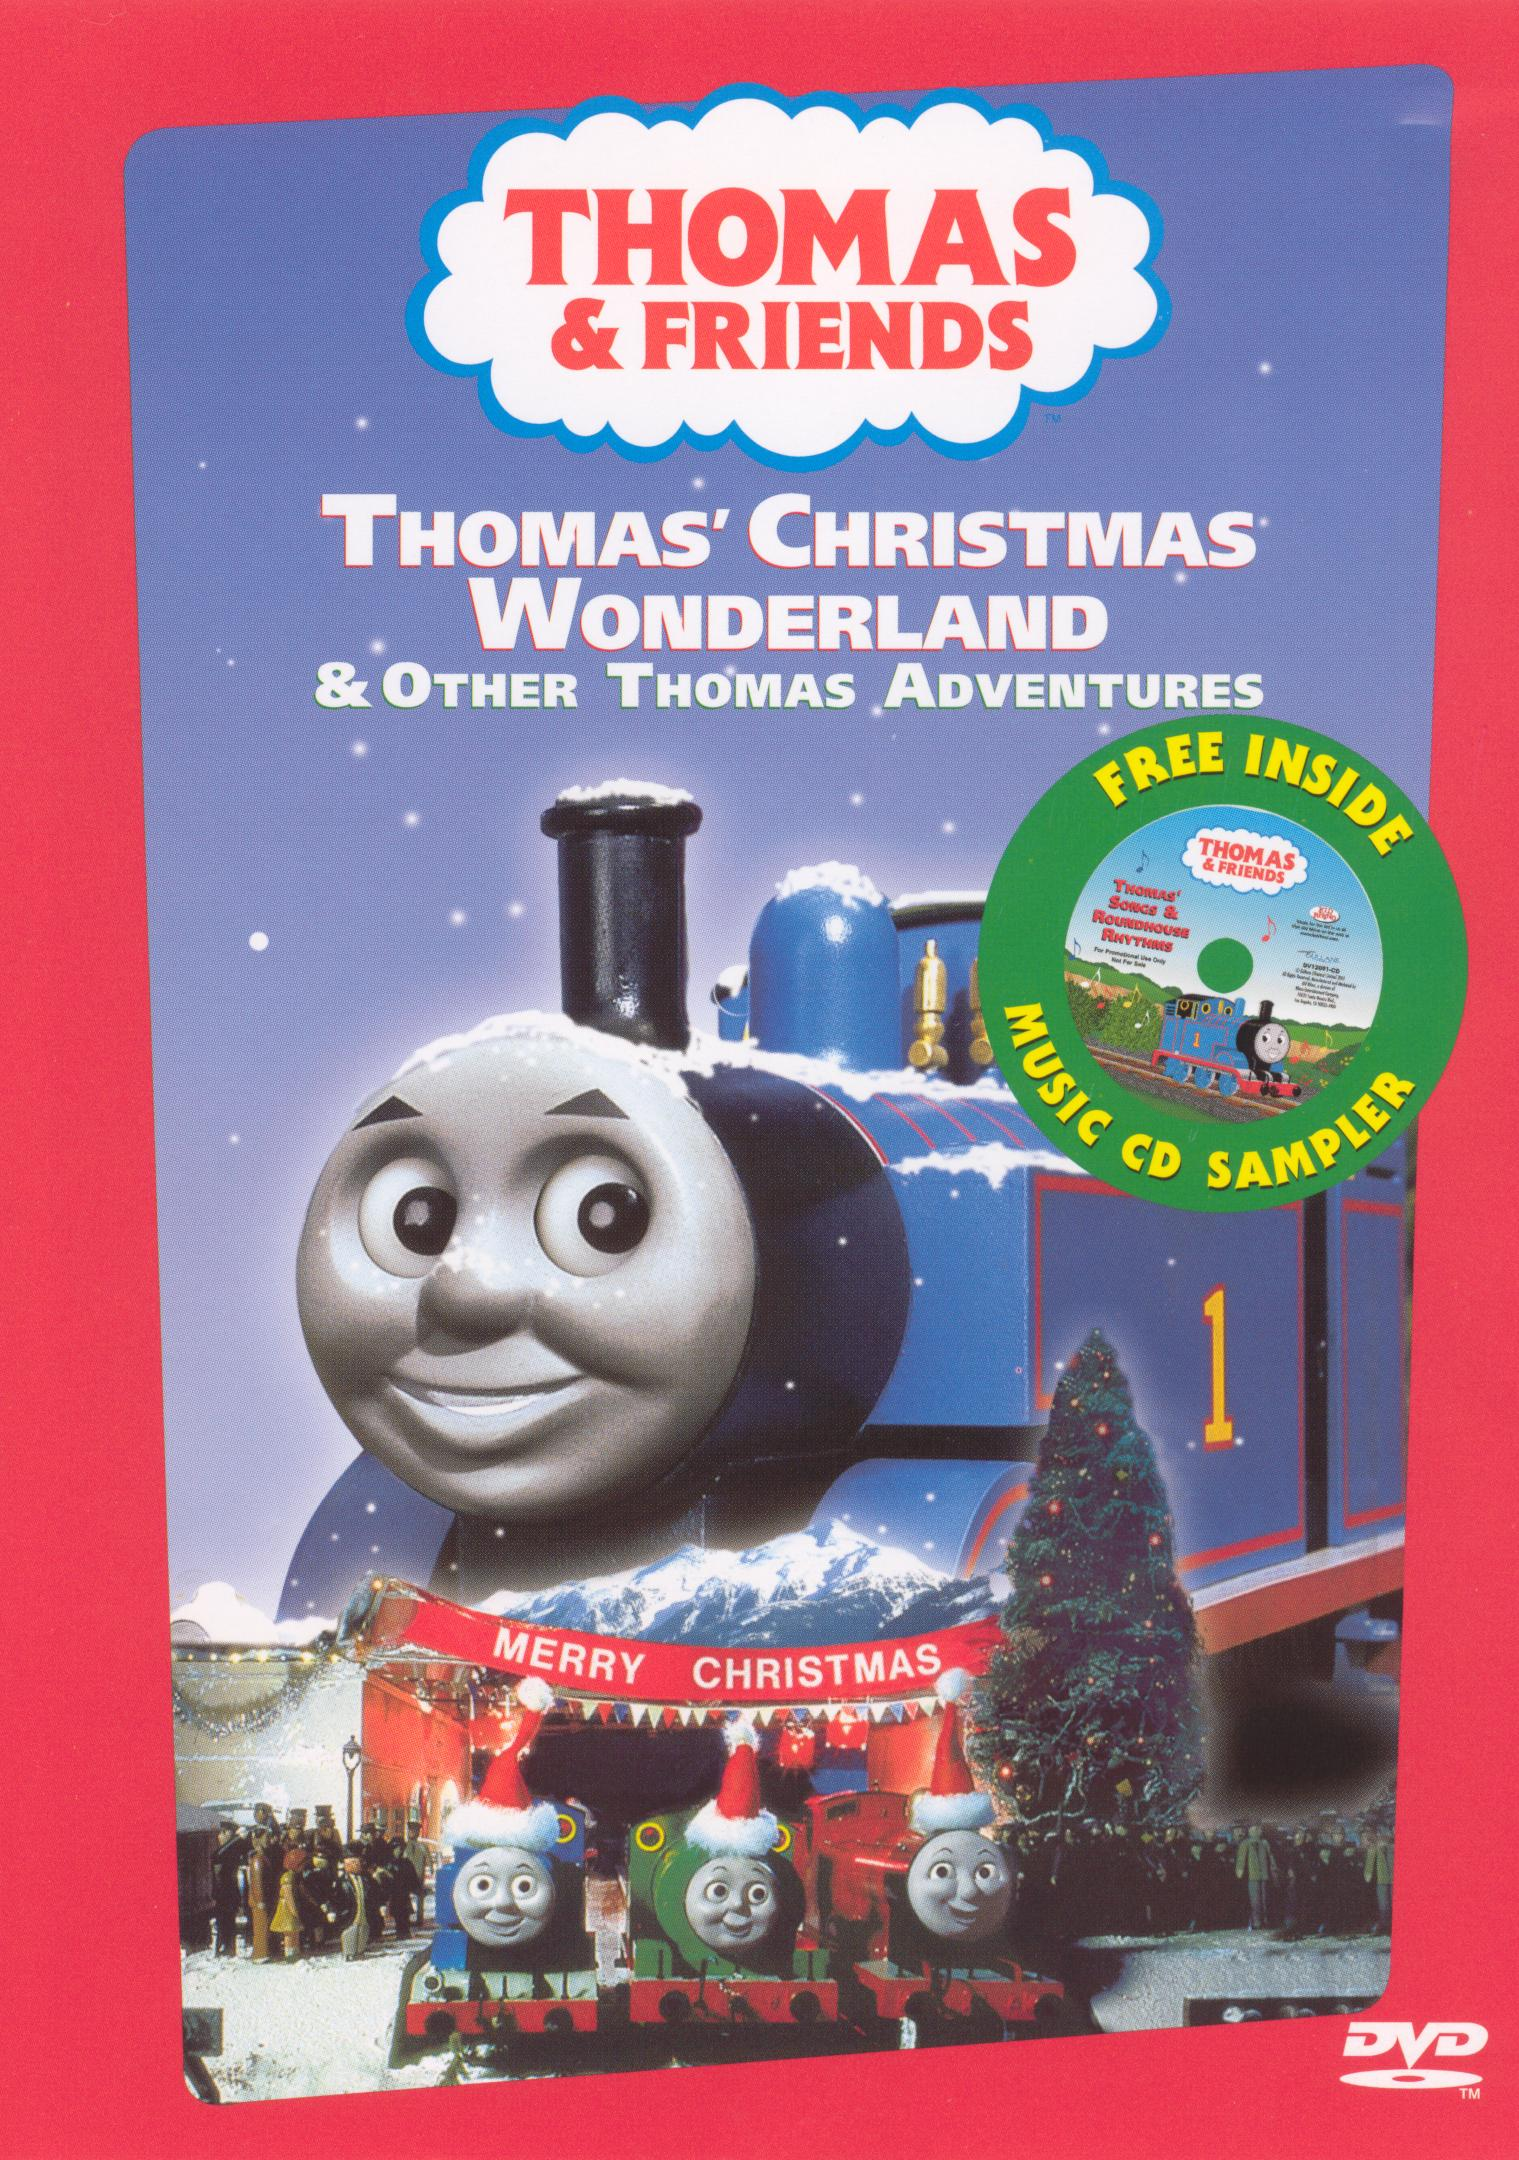 Thomas & Friends: Thomas' Christmas Wonderland